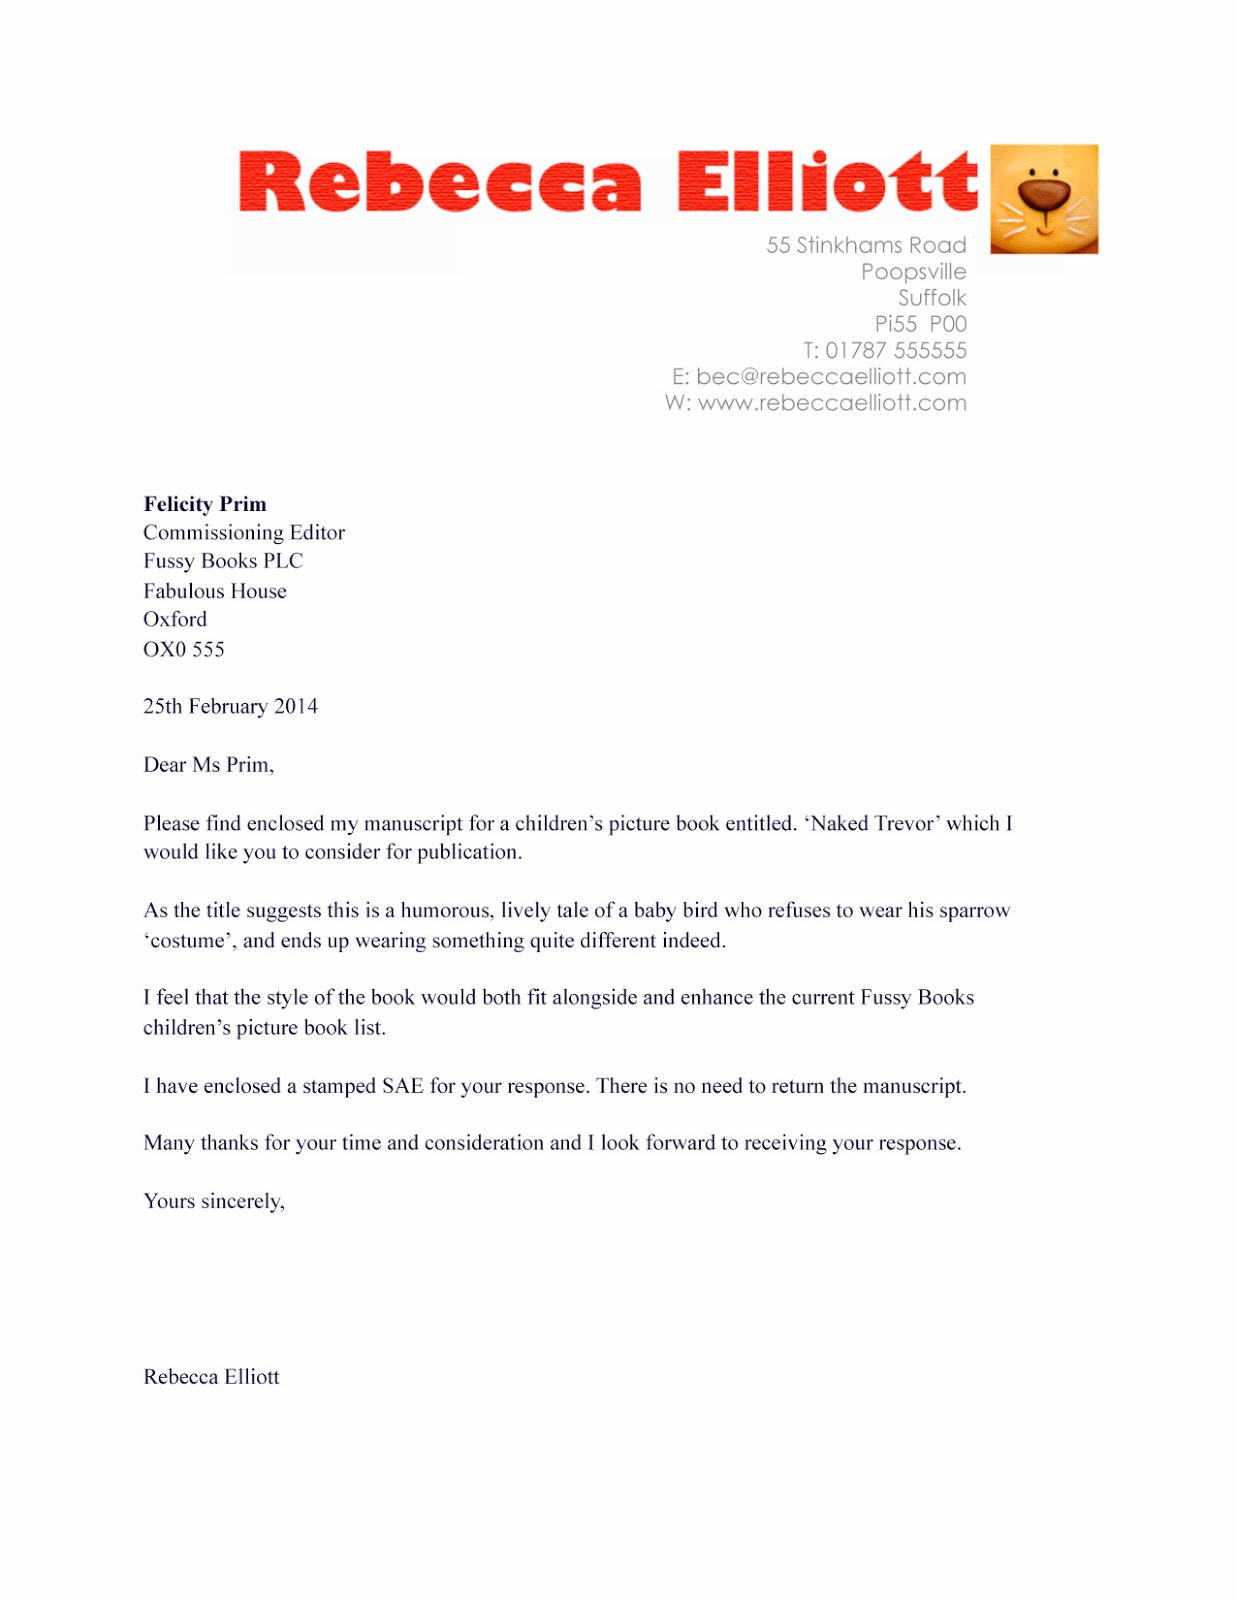 006 Book20submission Research Paper Cover Letter For Article Singular Publication Sample Manuscript Journal Full